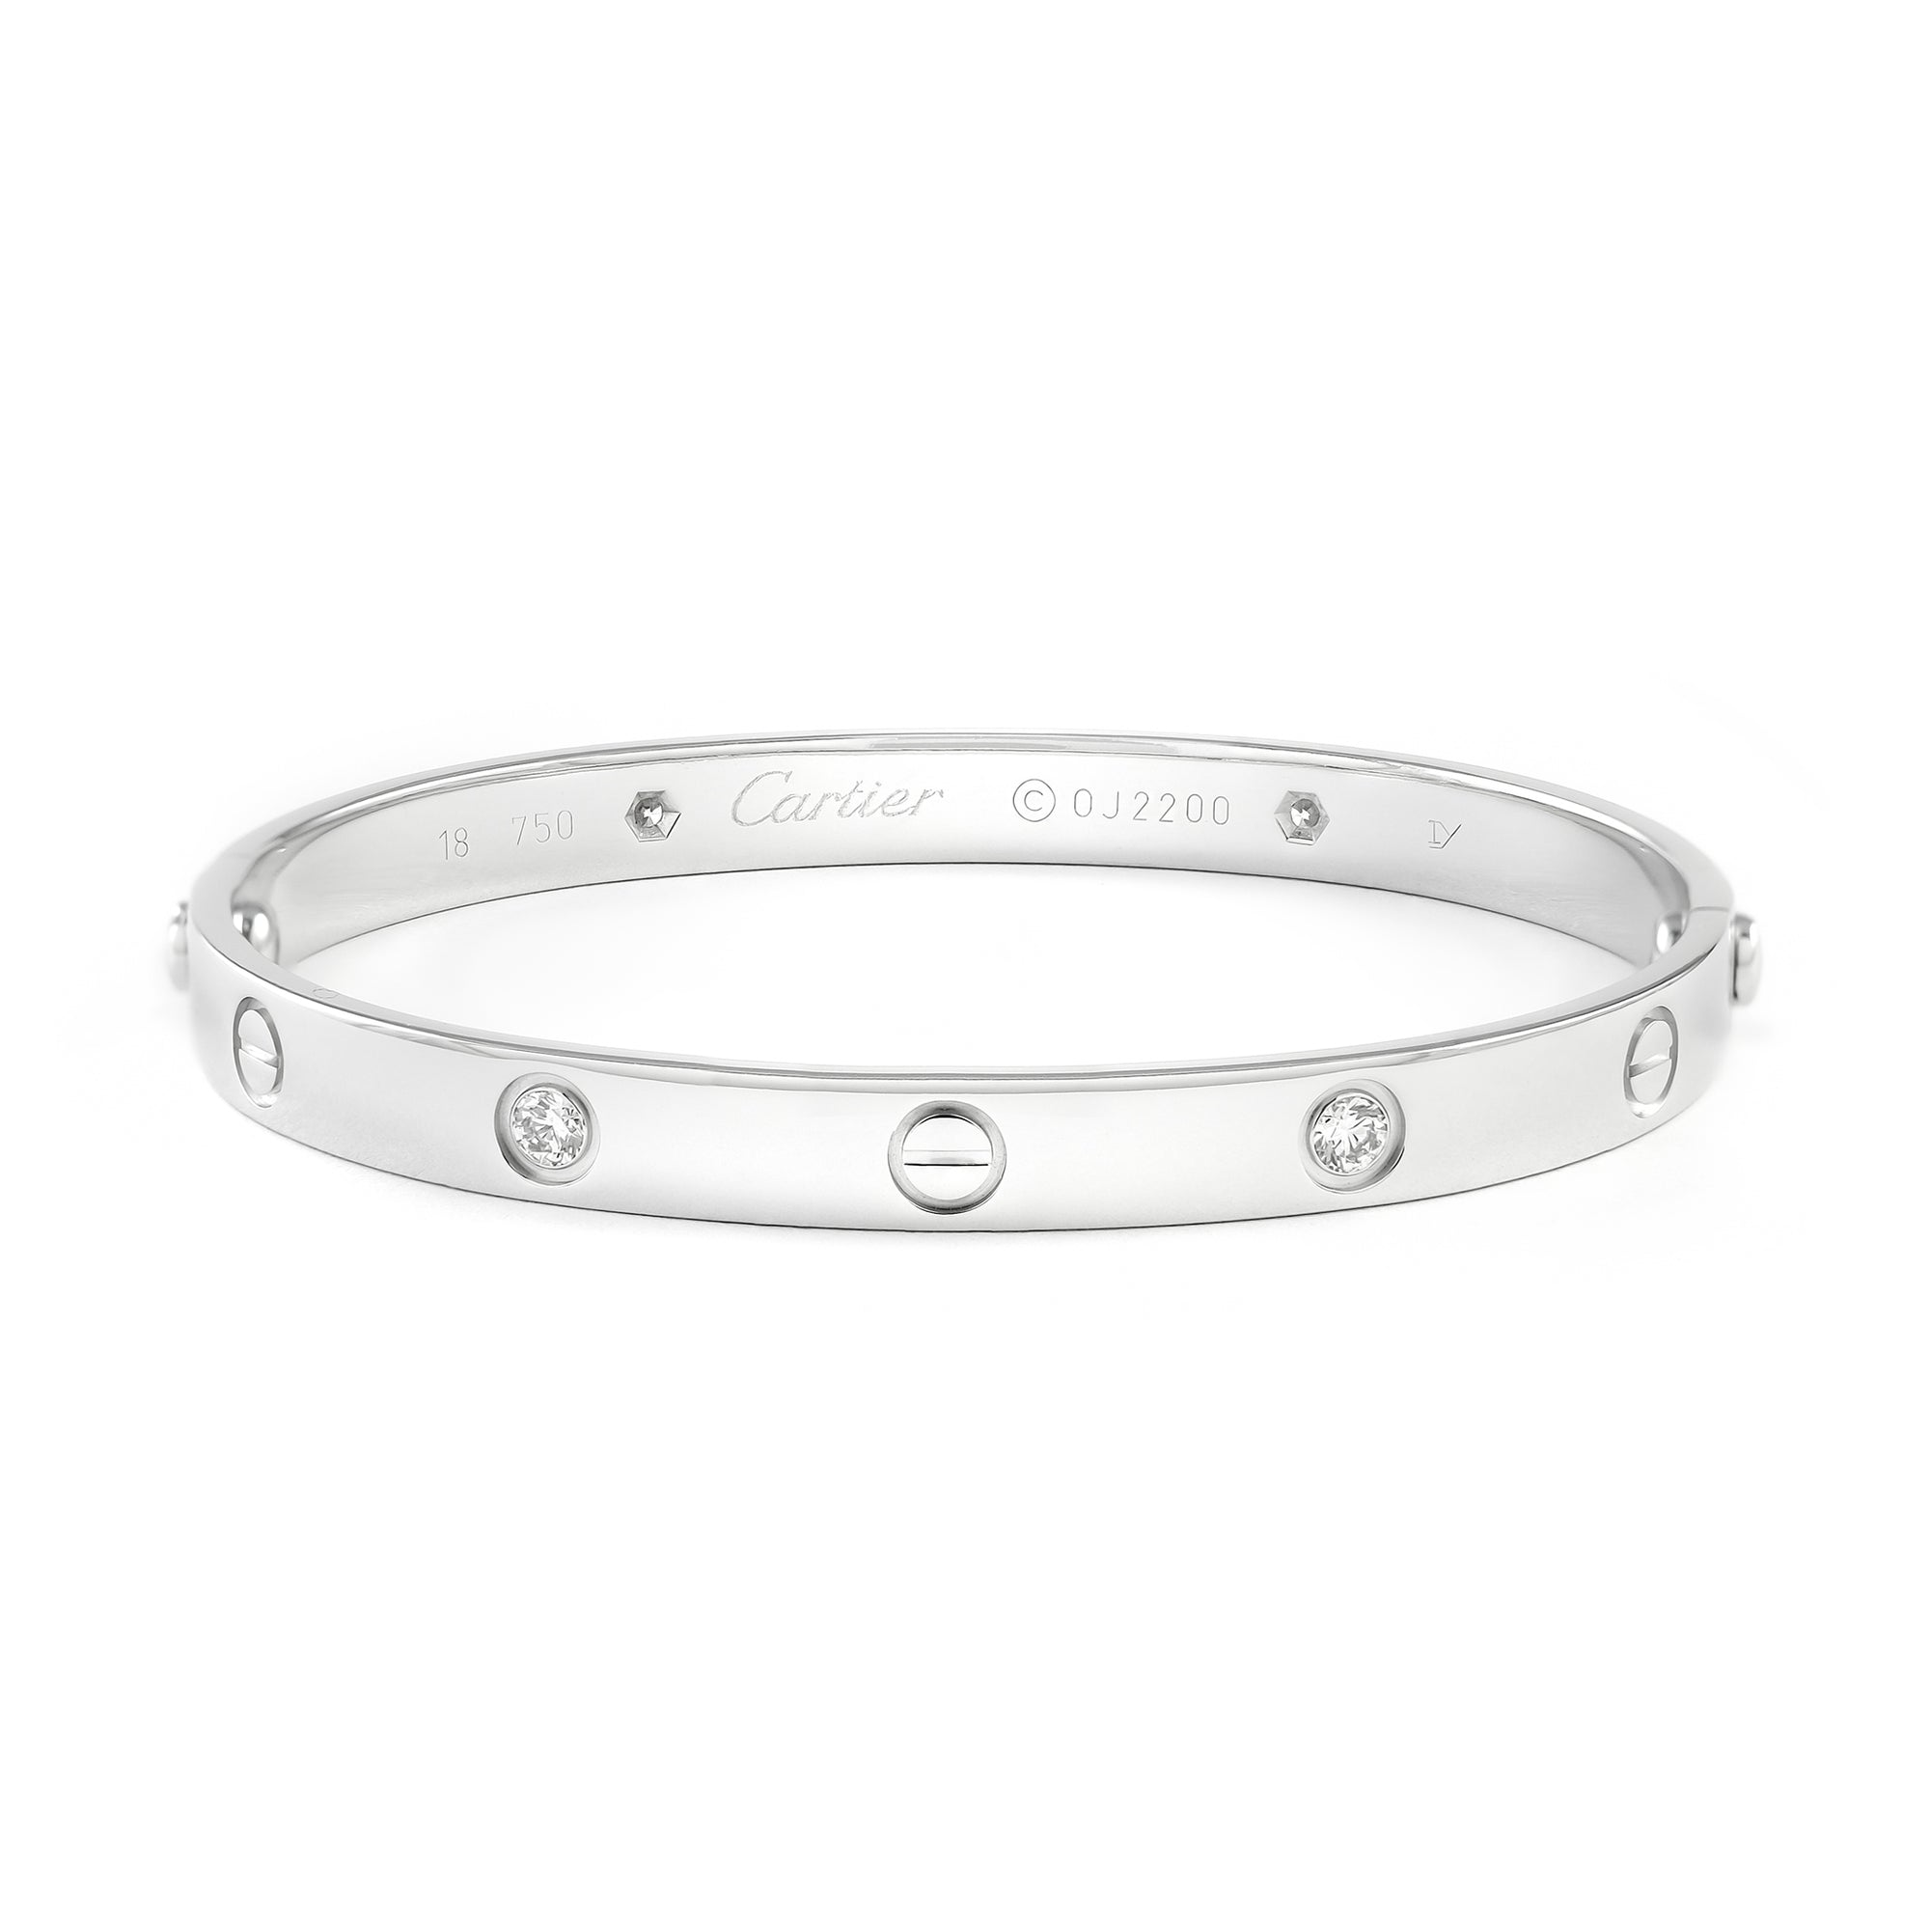 Cartier 18ct White Gold 4 Diamond Love Bangle